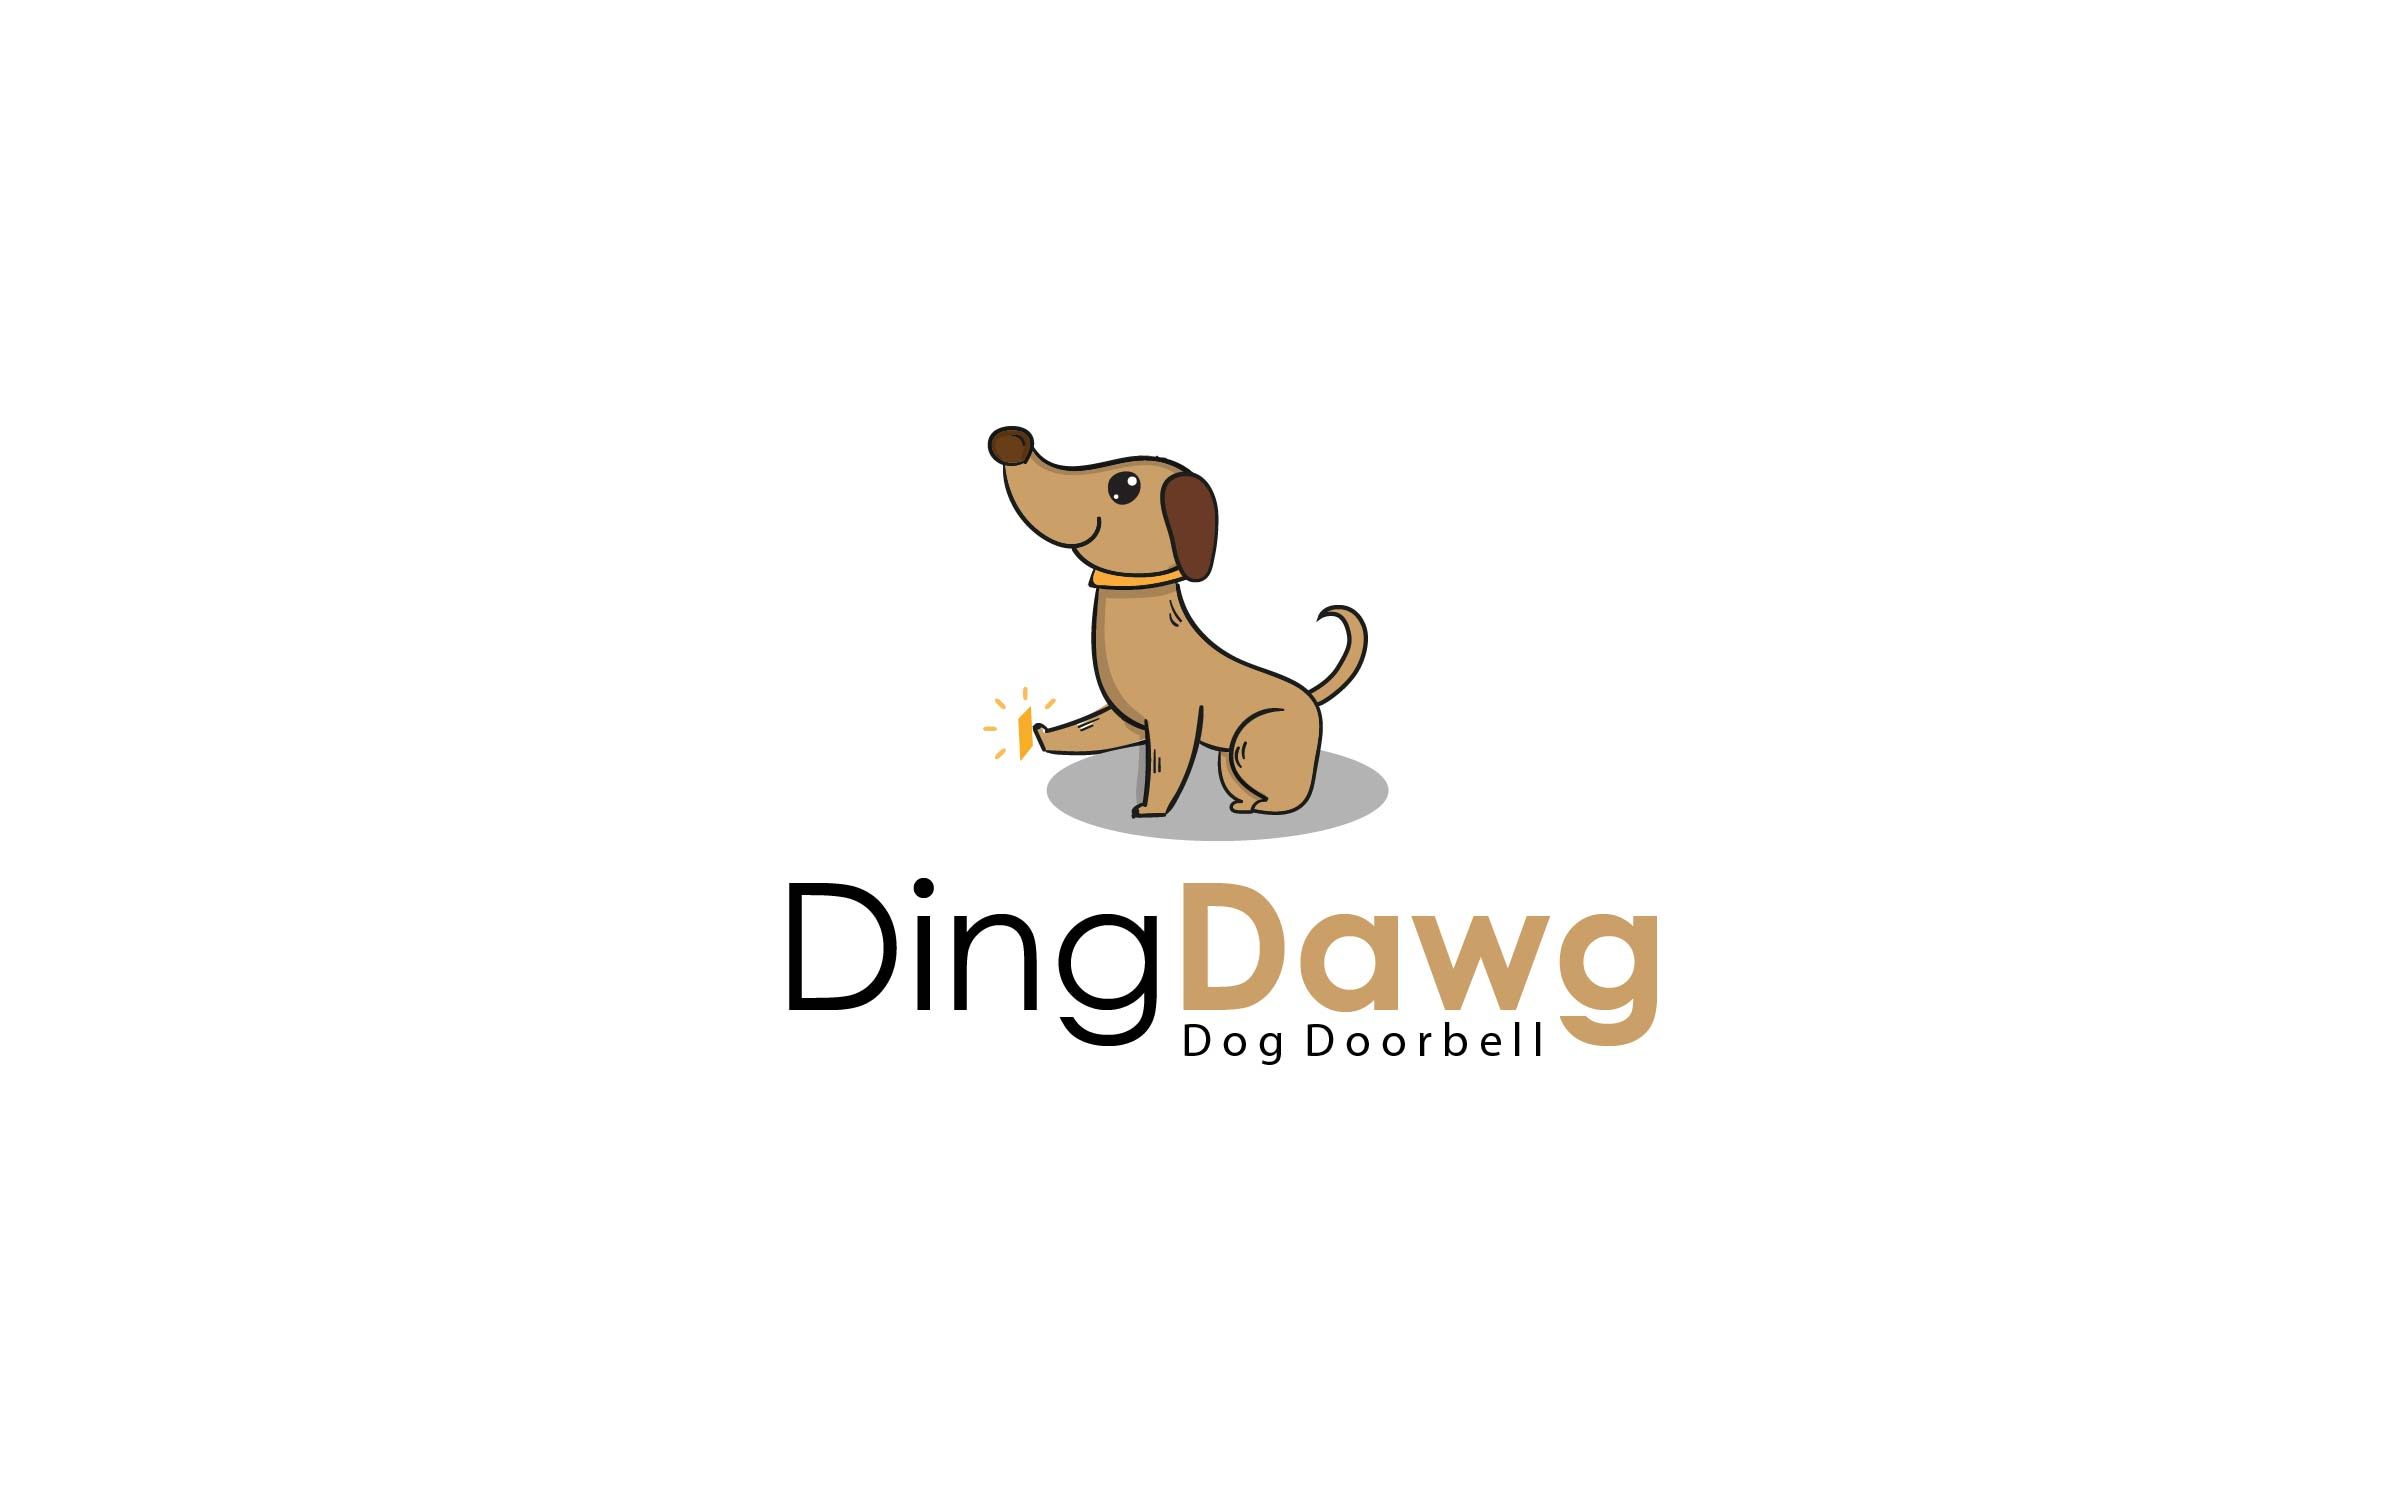 Jourjious Design - DingDawg logo.